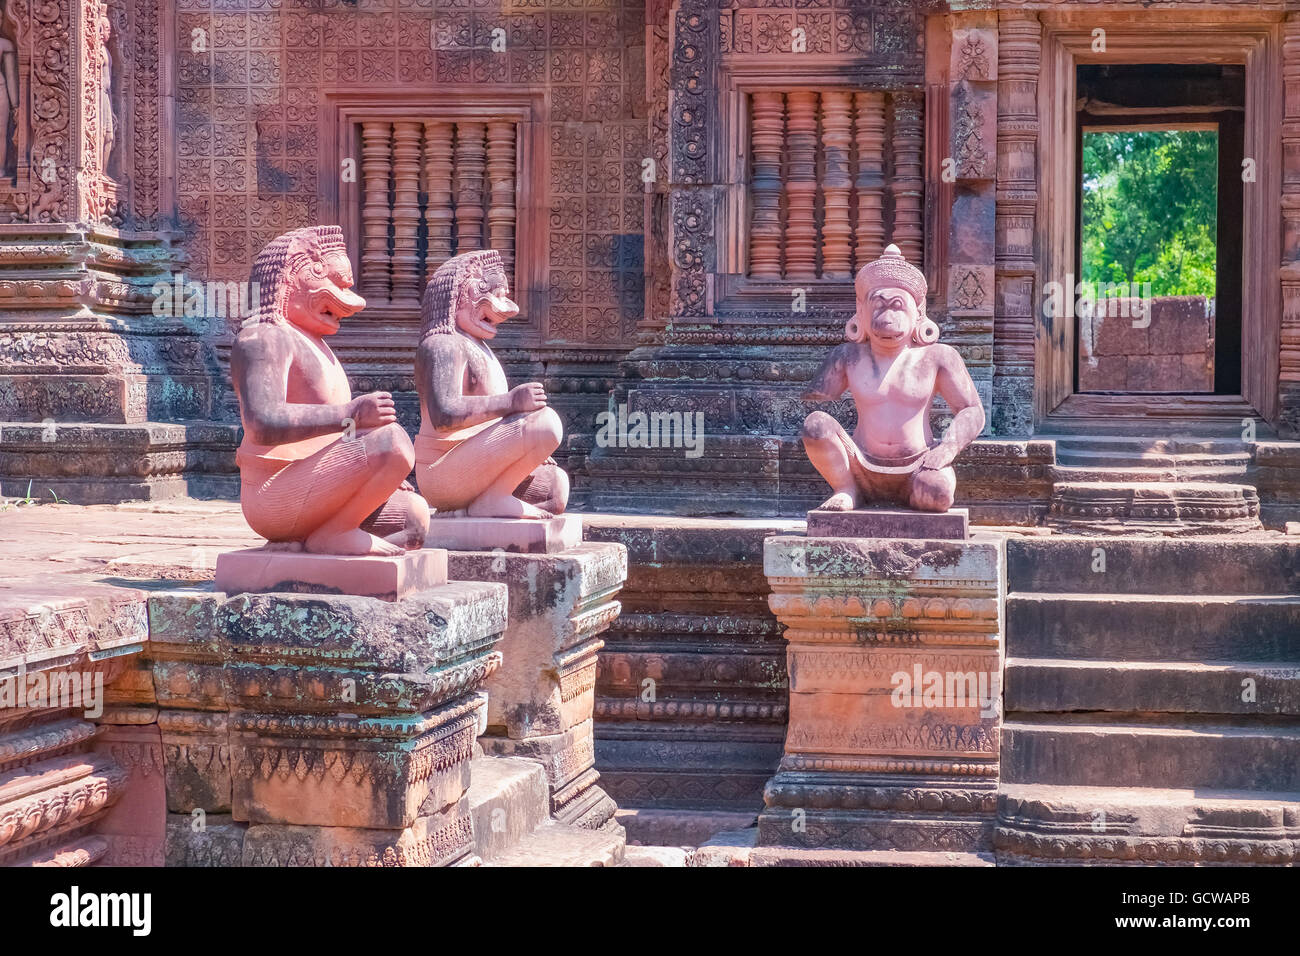 Ancient stone statues in Angkor Wat complex, Siem Reap, Cambodia. UNESCO World Heritage Site. - Stock Image